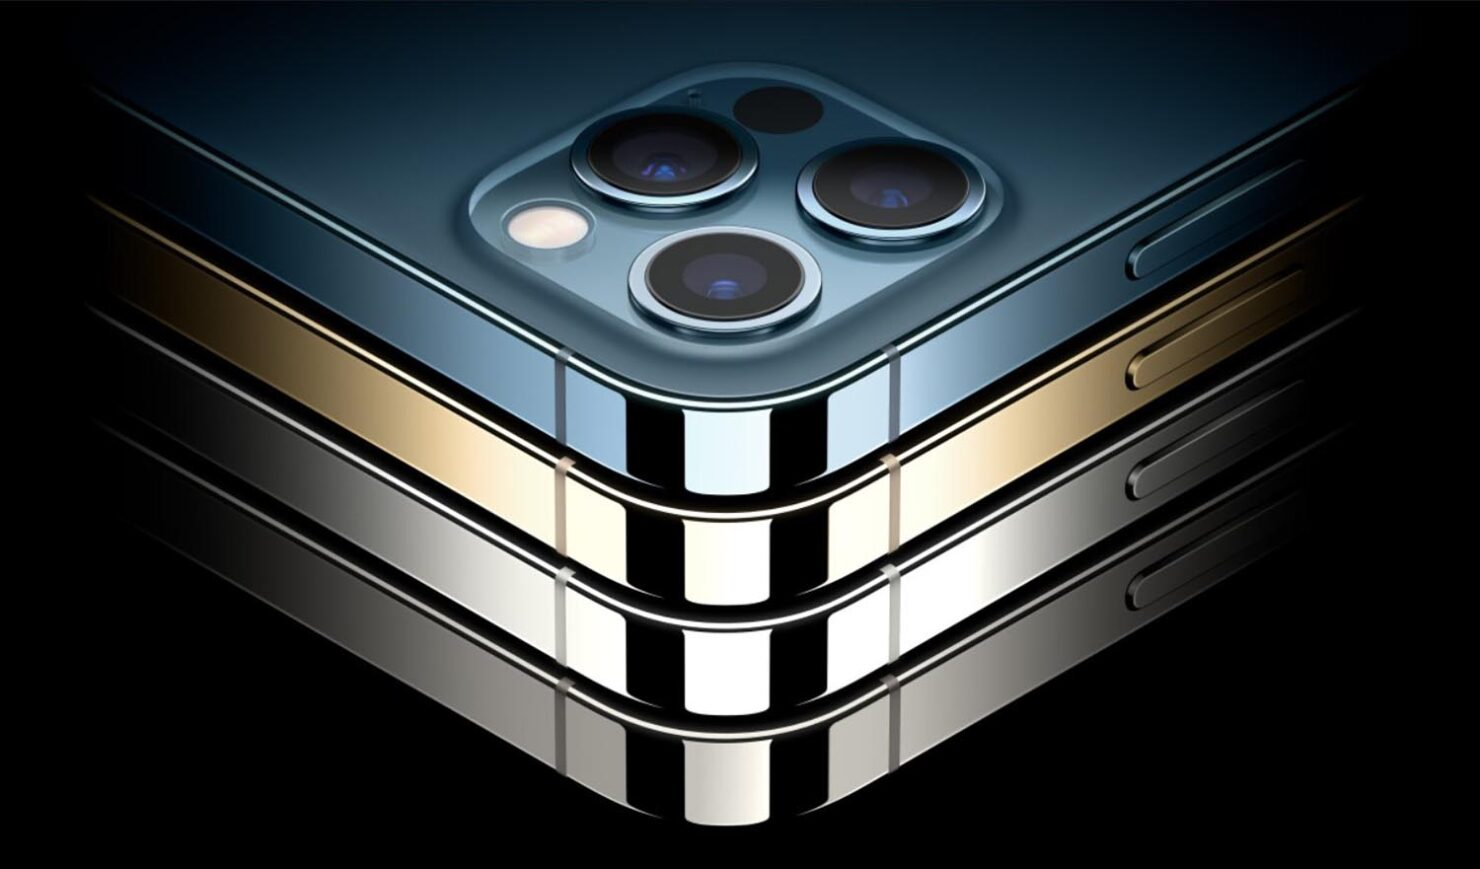 Apple Warns iPhone Users That Vibrations From Motorcycle Engines Can Permanently Damage Cameras